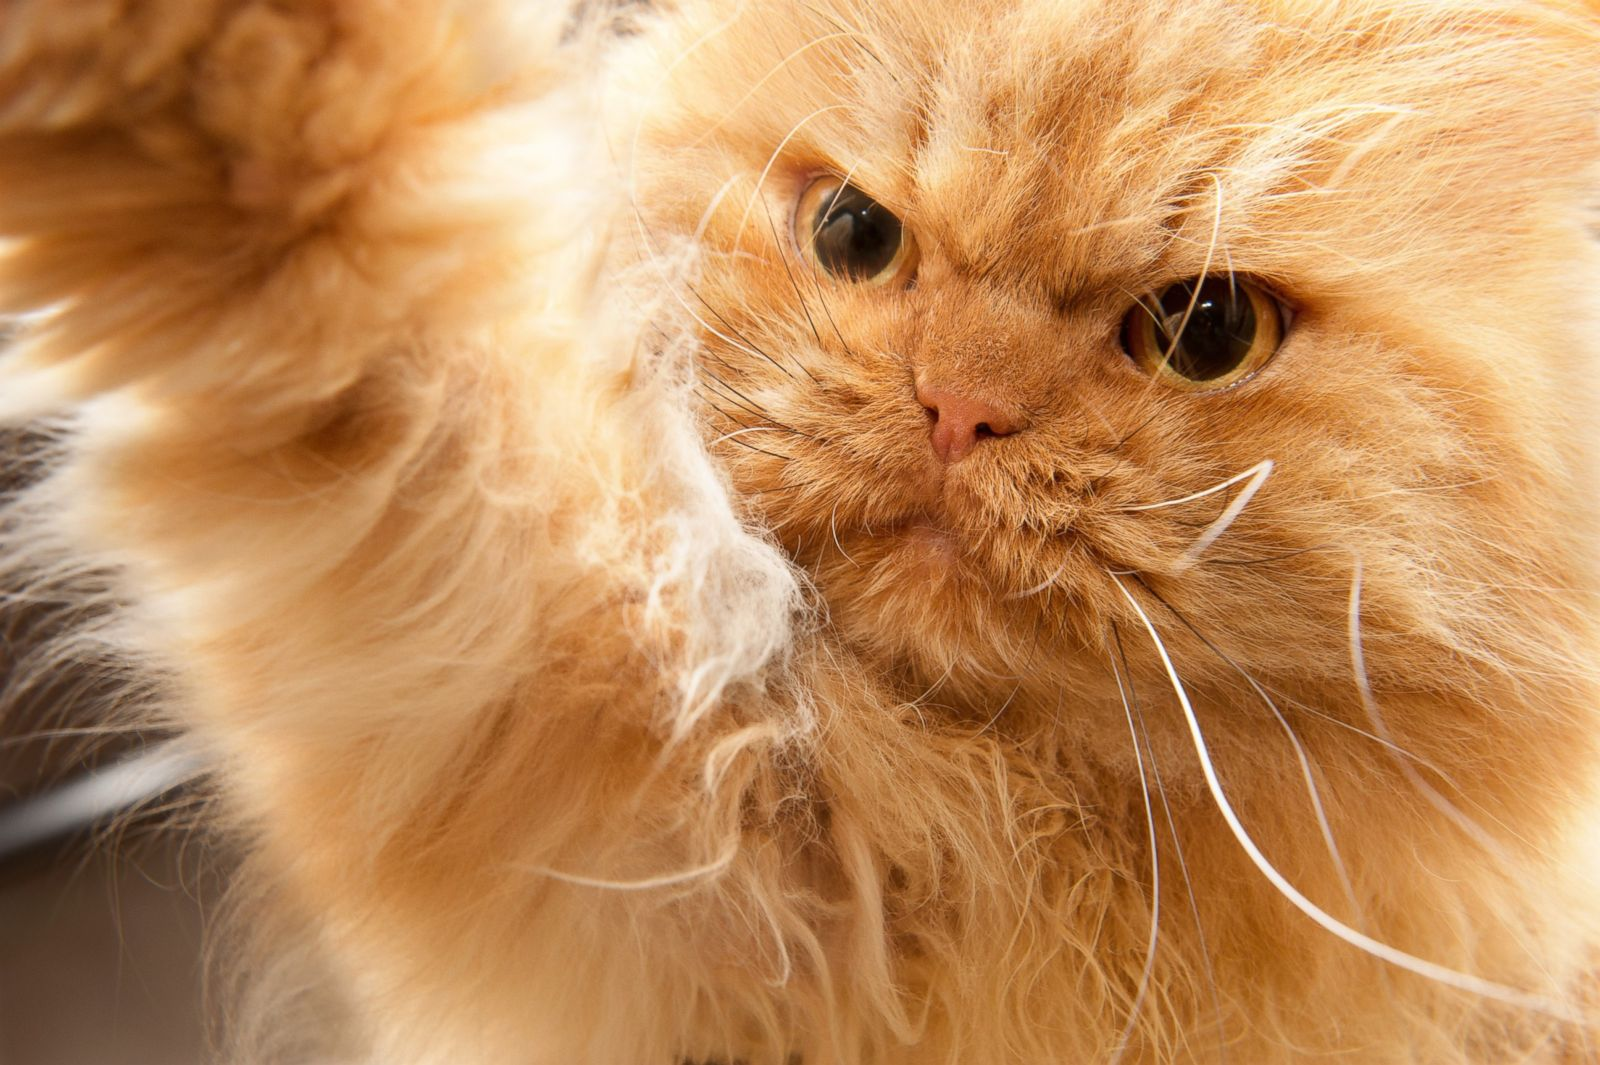 Garfi The Angriest Cat Photos Image ABC News - Garfi is officially the worlds angriest cat